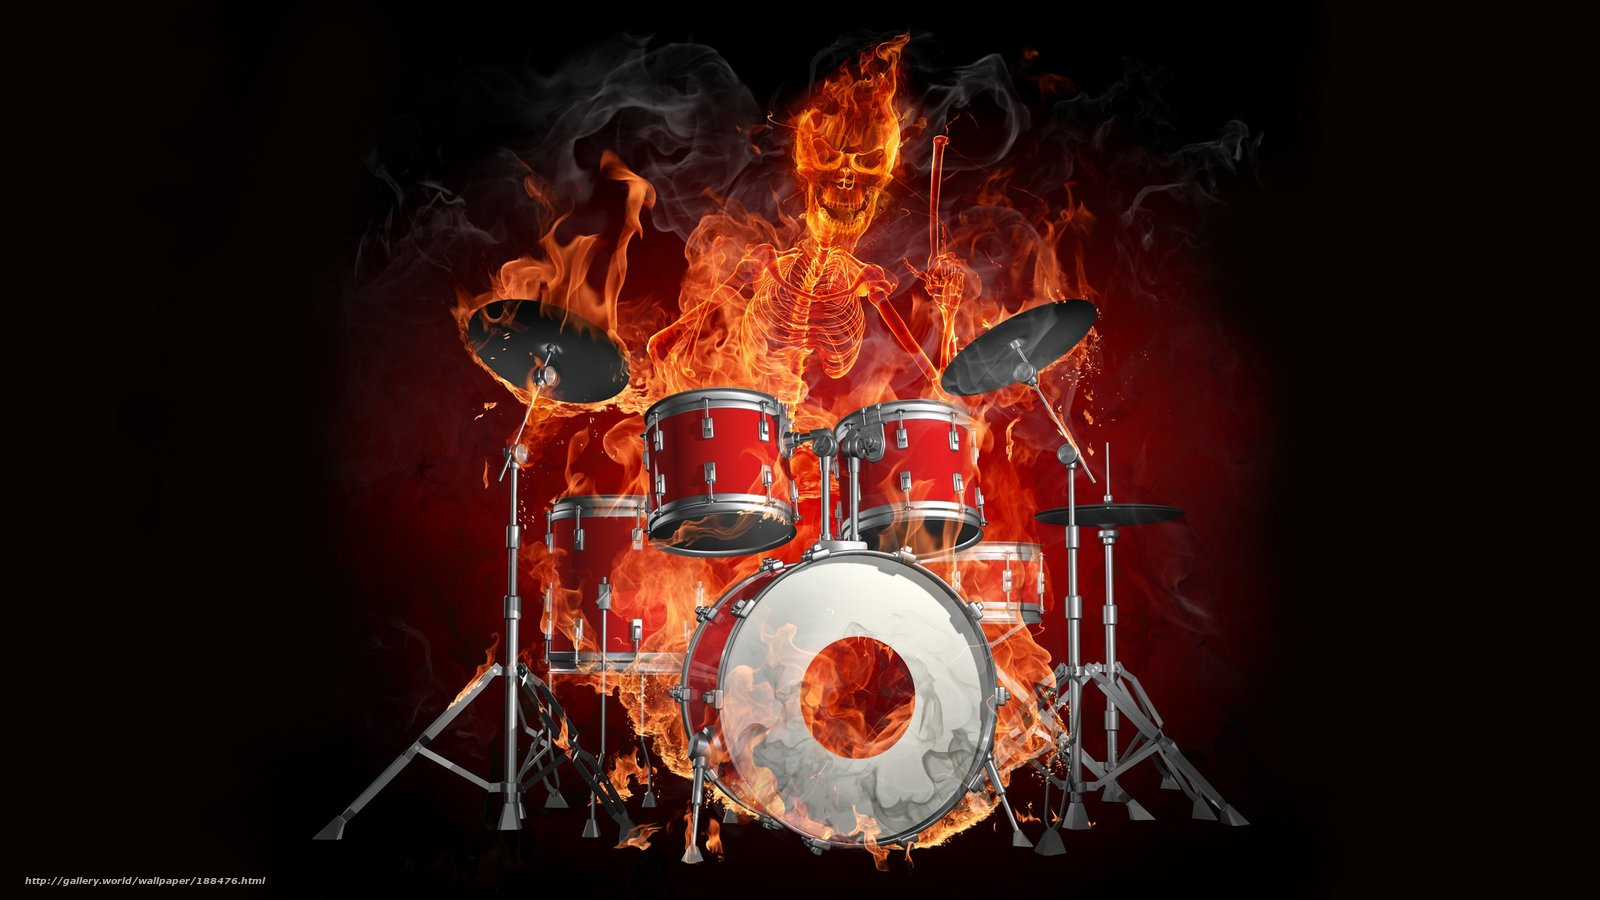 Demonic Skull Pics http://www.gdefon.com/download/drums_fire-demon_skull/188476/2560x1440